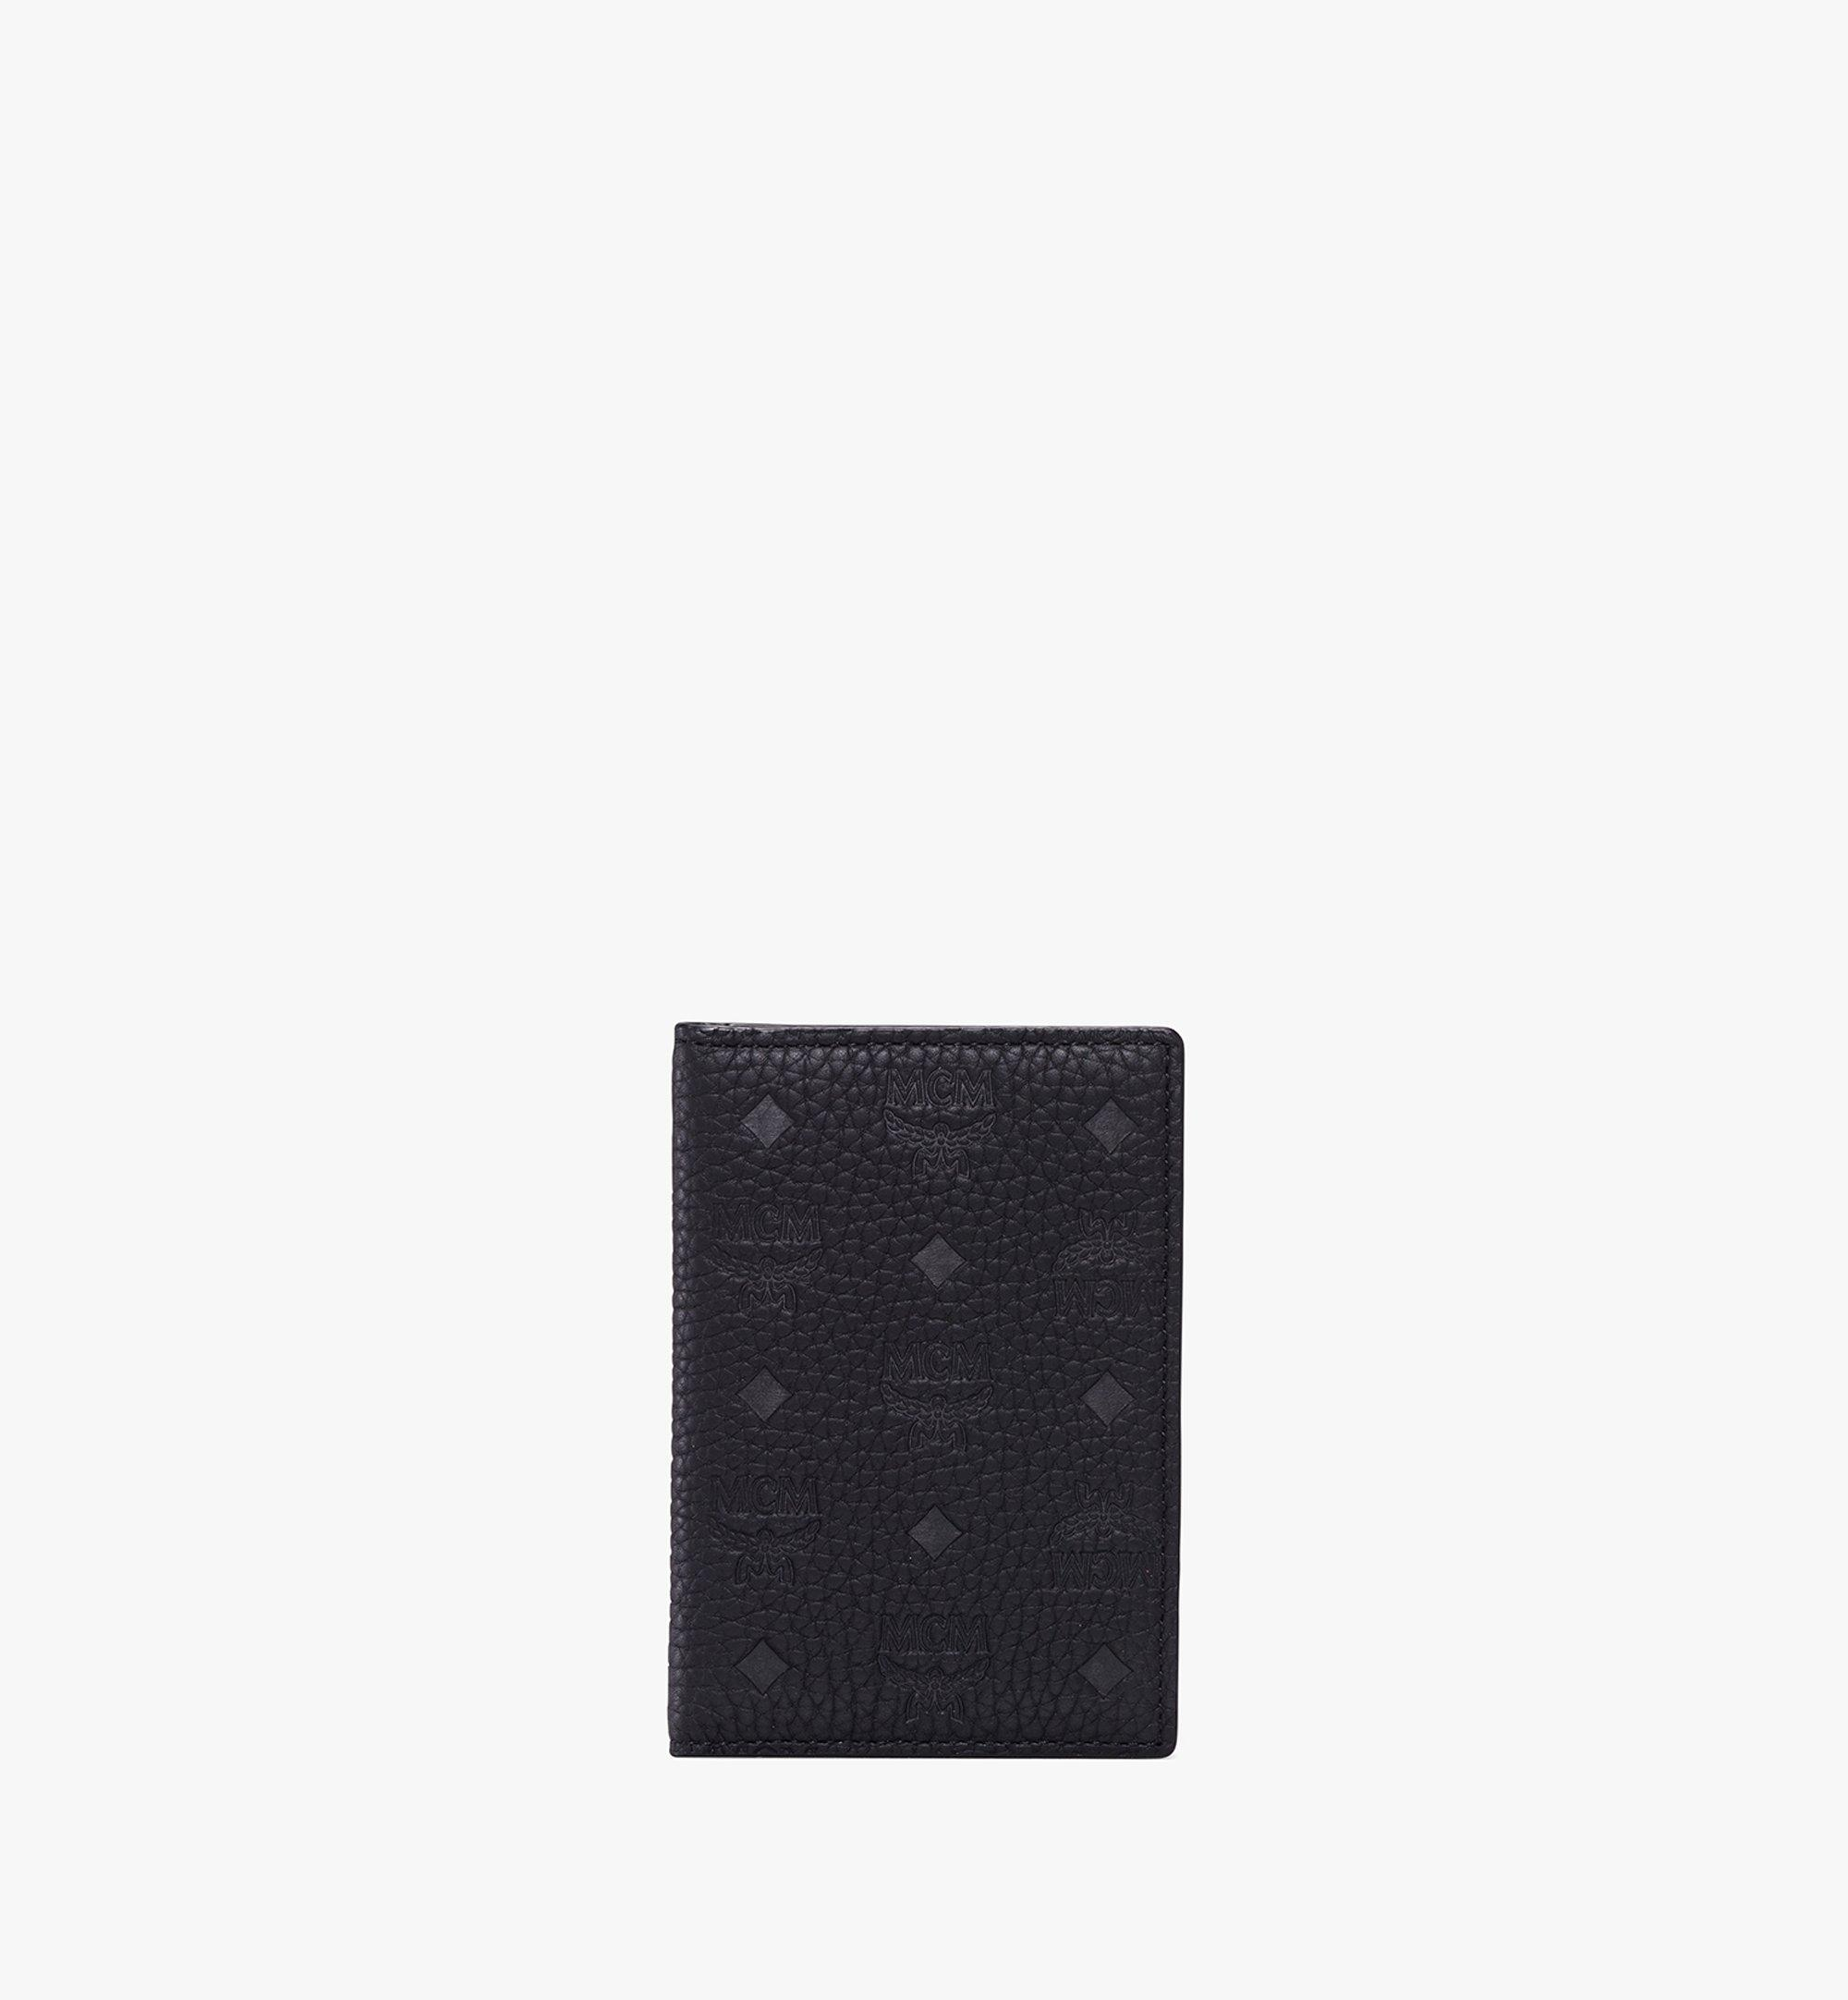 MCM Tivitat Two-Fold Card Wallet in Monogram Leather Black MXS9ABT25BK001 Alternate View 1